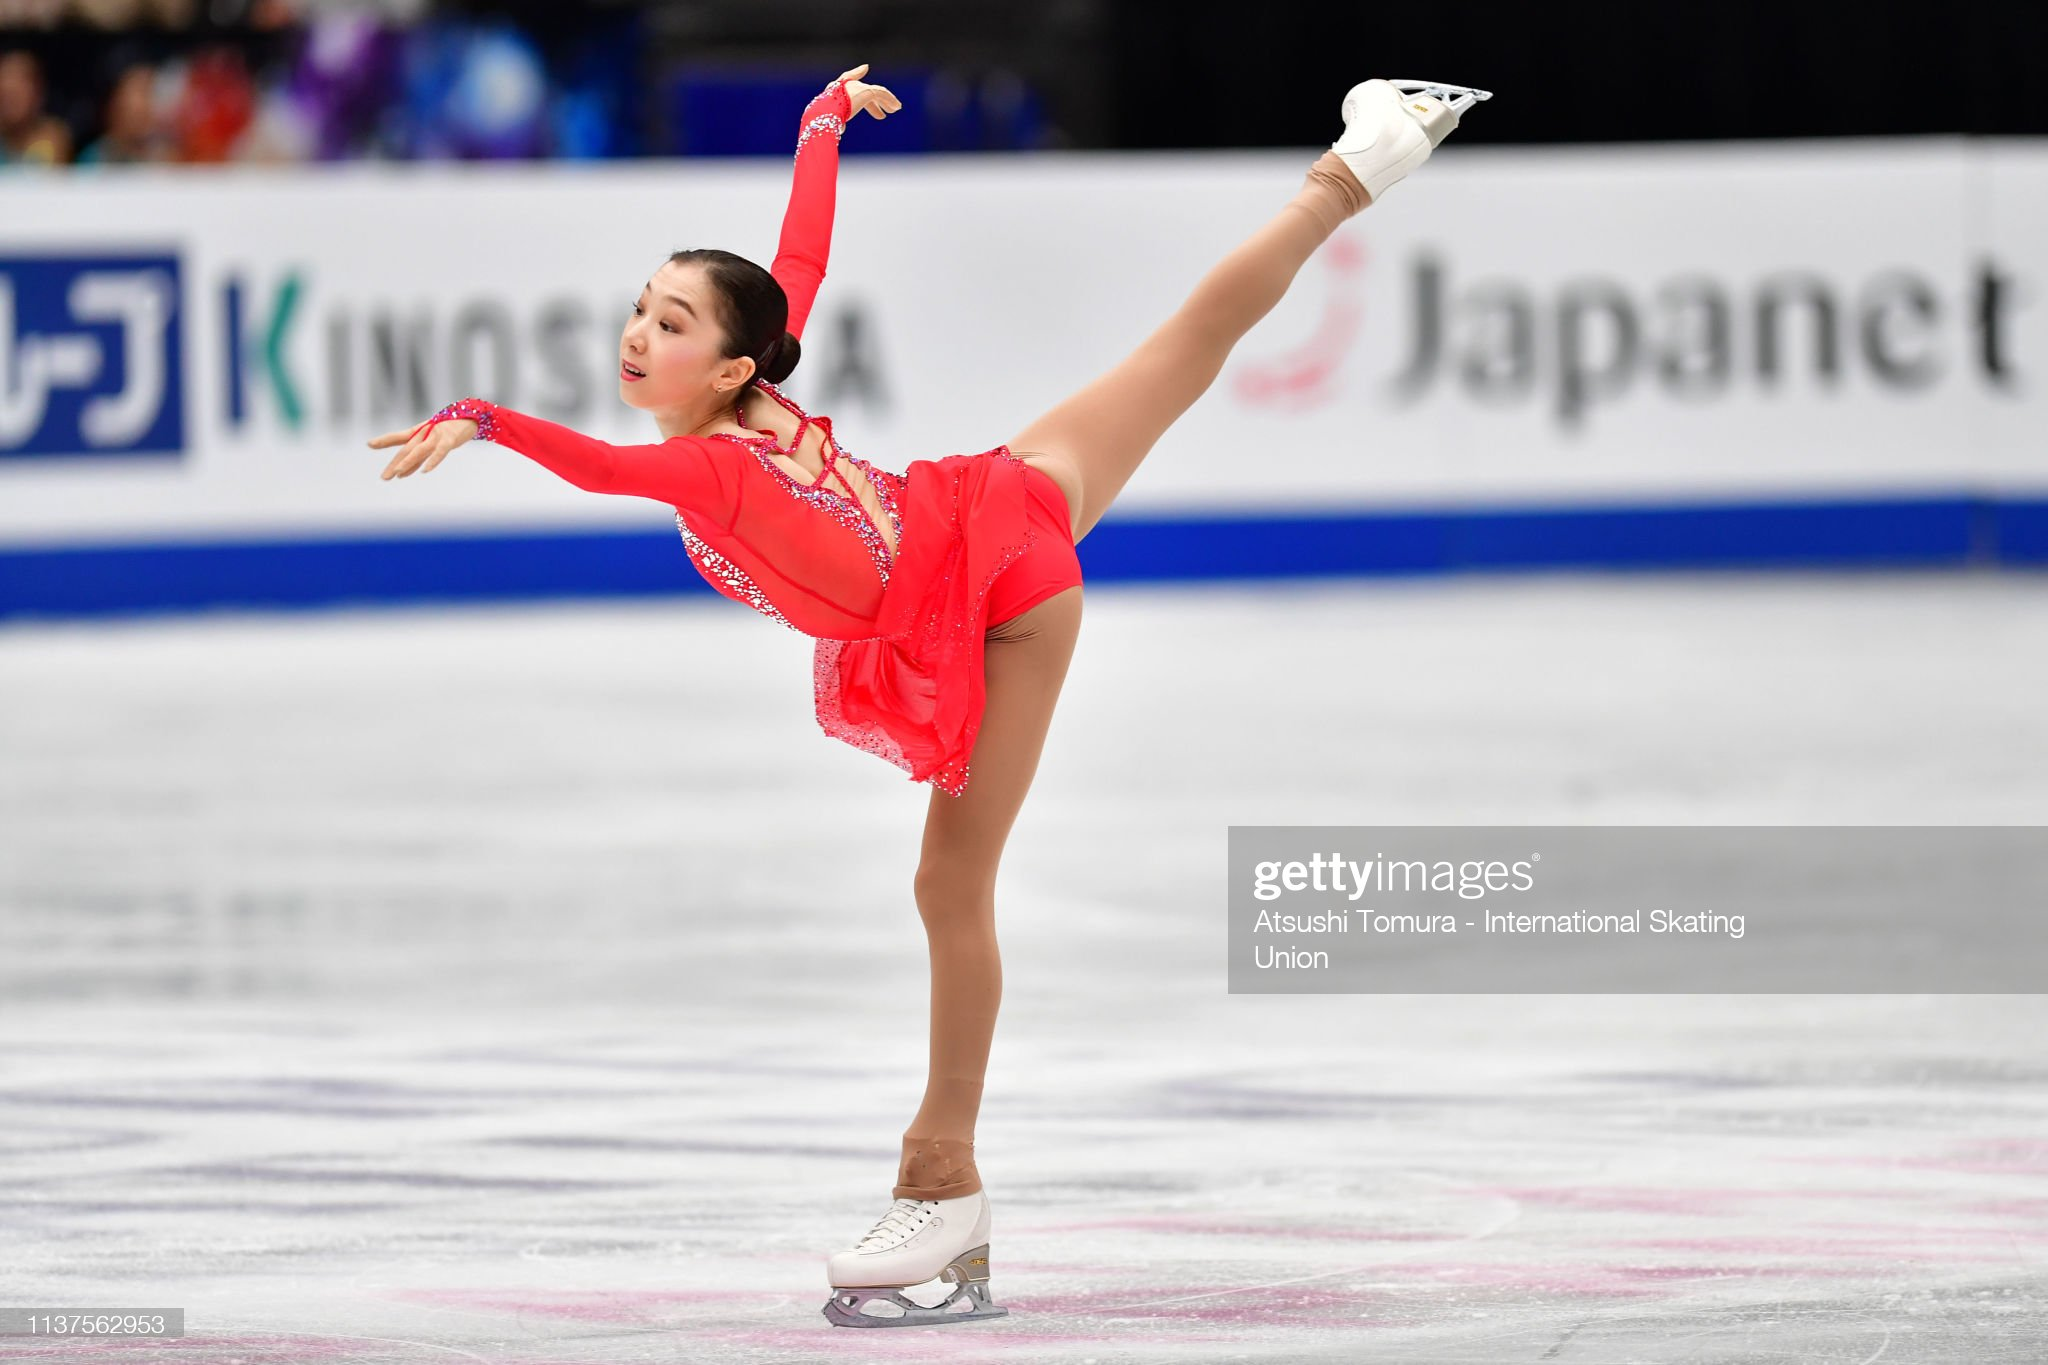 https://media.gettyimages.com/photos/elizabettursynbaeva-of-kazakhstan-competes-in-the-ladies-free-skating-picture-id1137562953?s=2048x2048